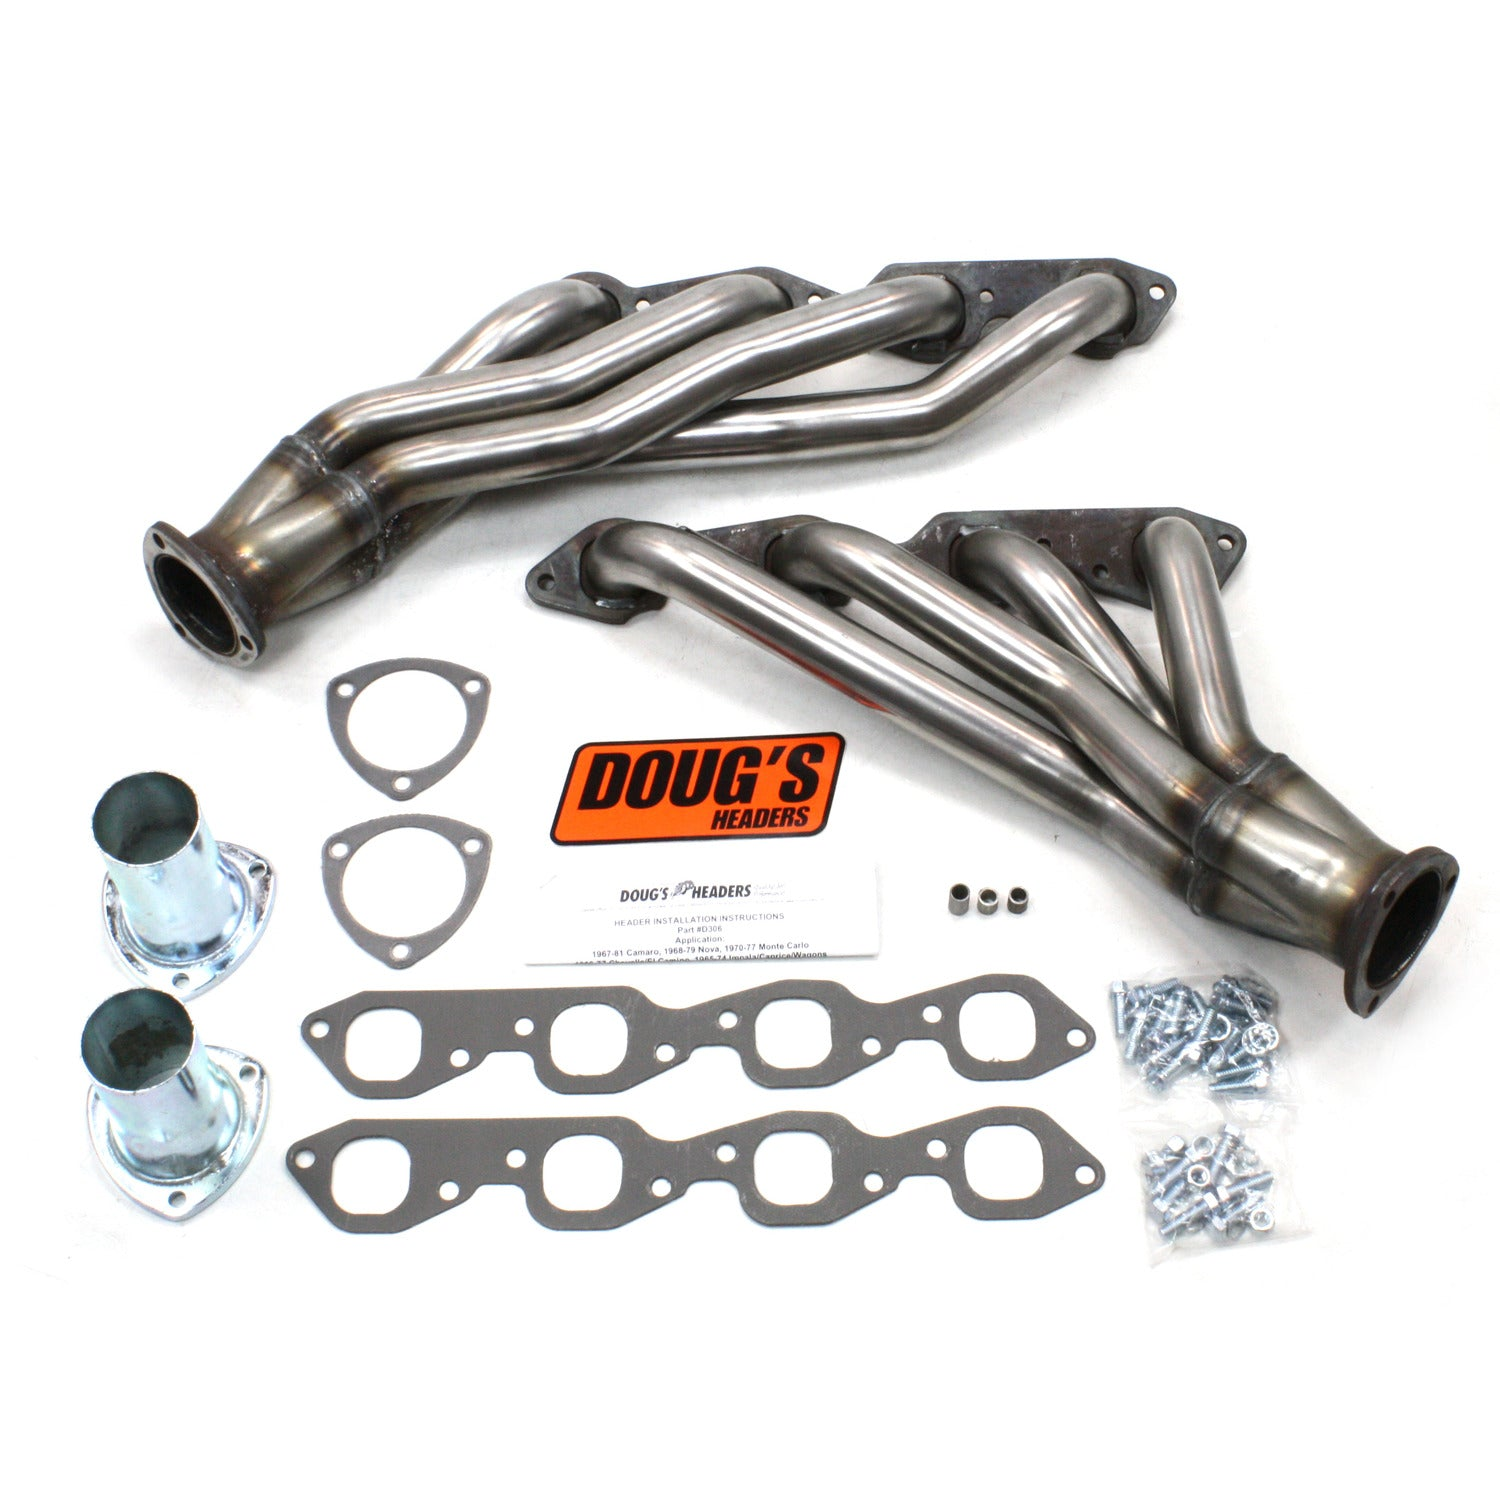 "Doug's Headers D306-R 1 3/4"" 4-Tube Shorty Header Chevrolet Camaro Big Block Chevrolet 67-81 Raw Steel"